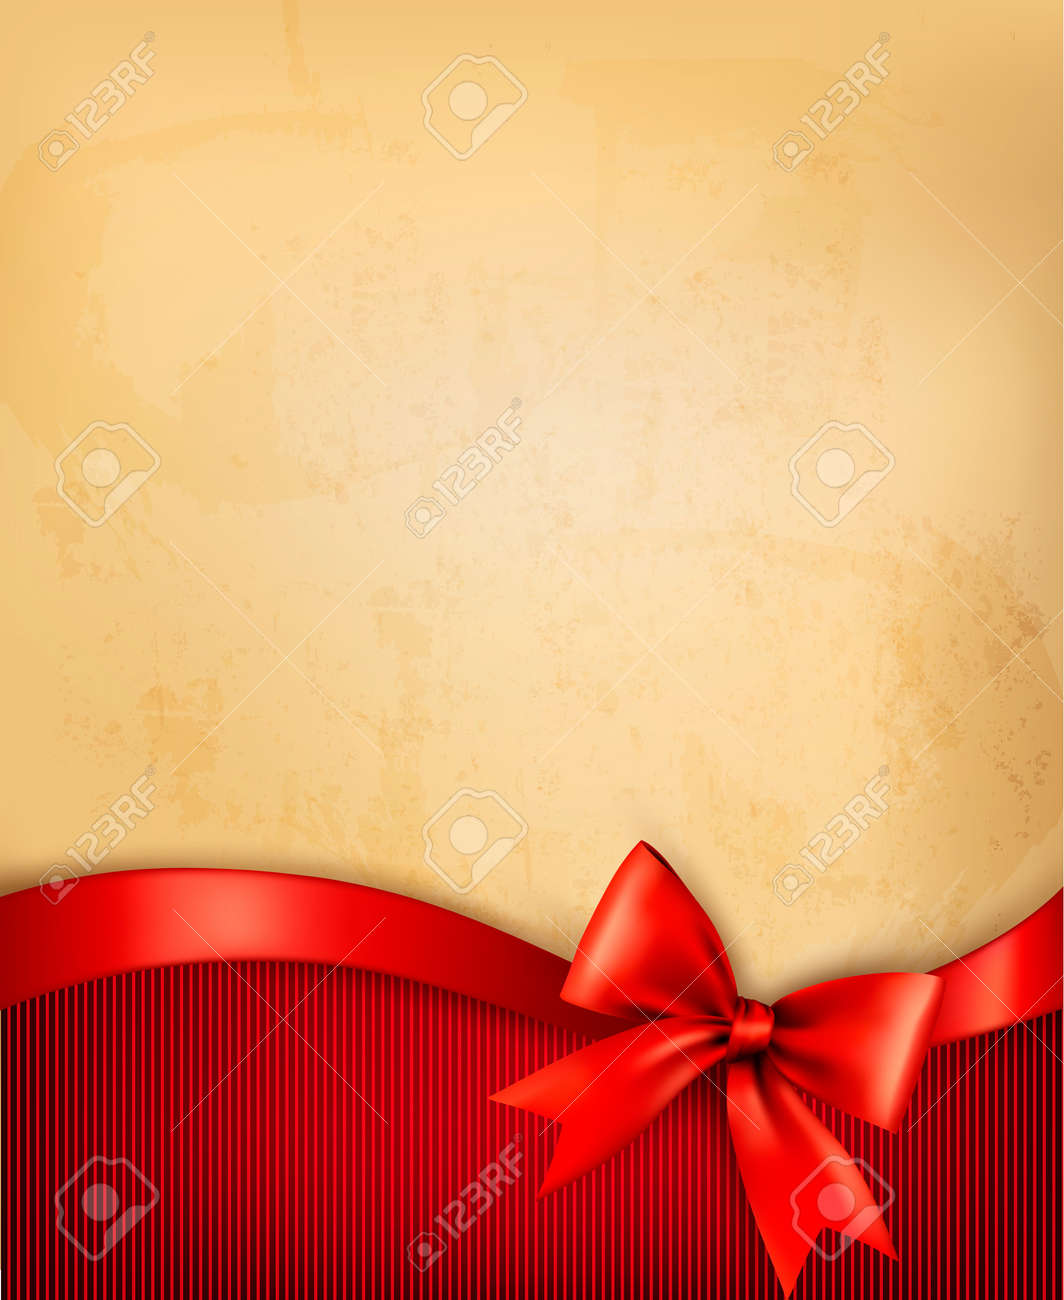 Vintage background with red gift bow and ribbon on old paper. Vector illustration. Stock Vector - 18139368